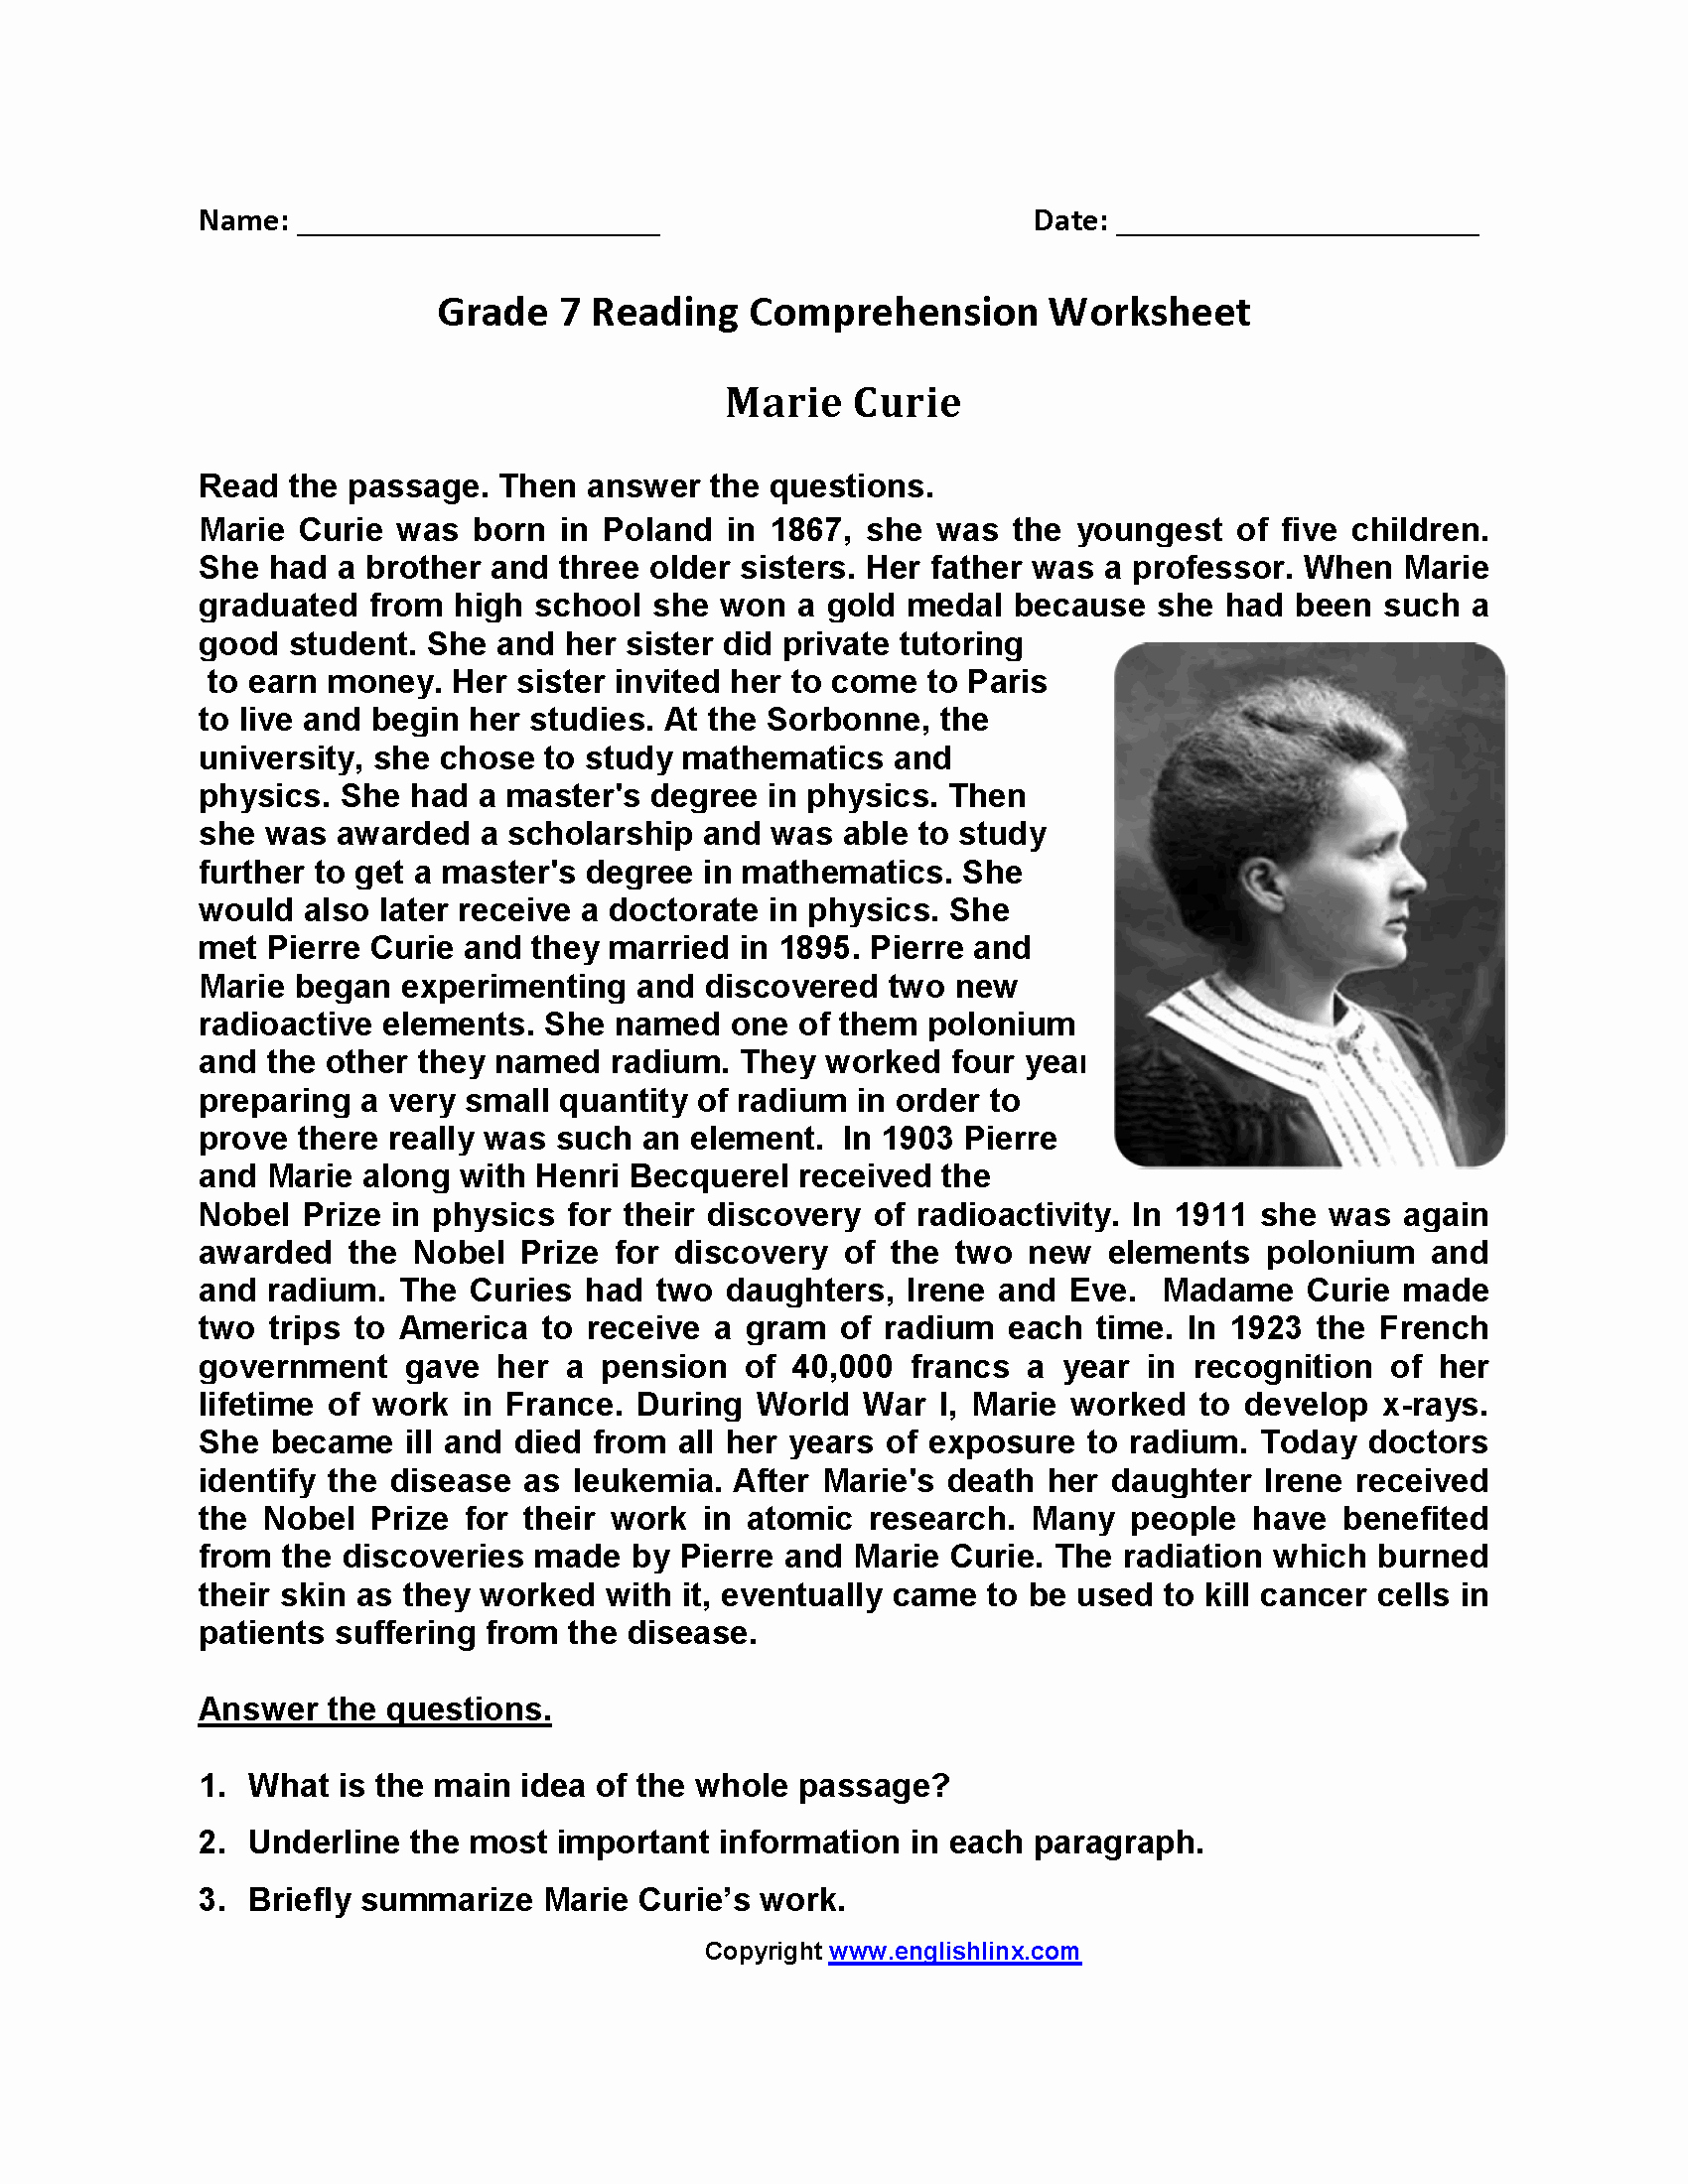 Free 7th Grade Reading Worksheets Luxury Seventh Grade 7th Grade English Worksheets with Answer Key